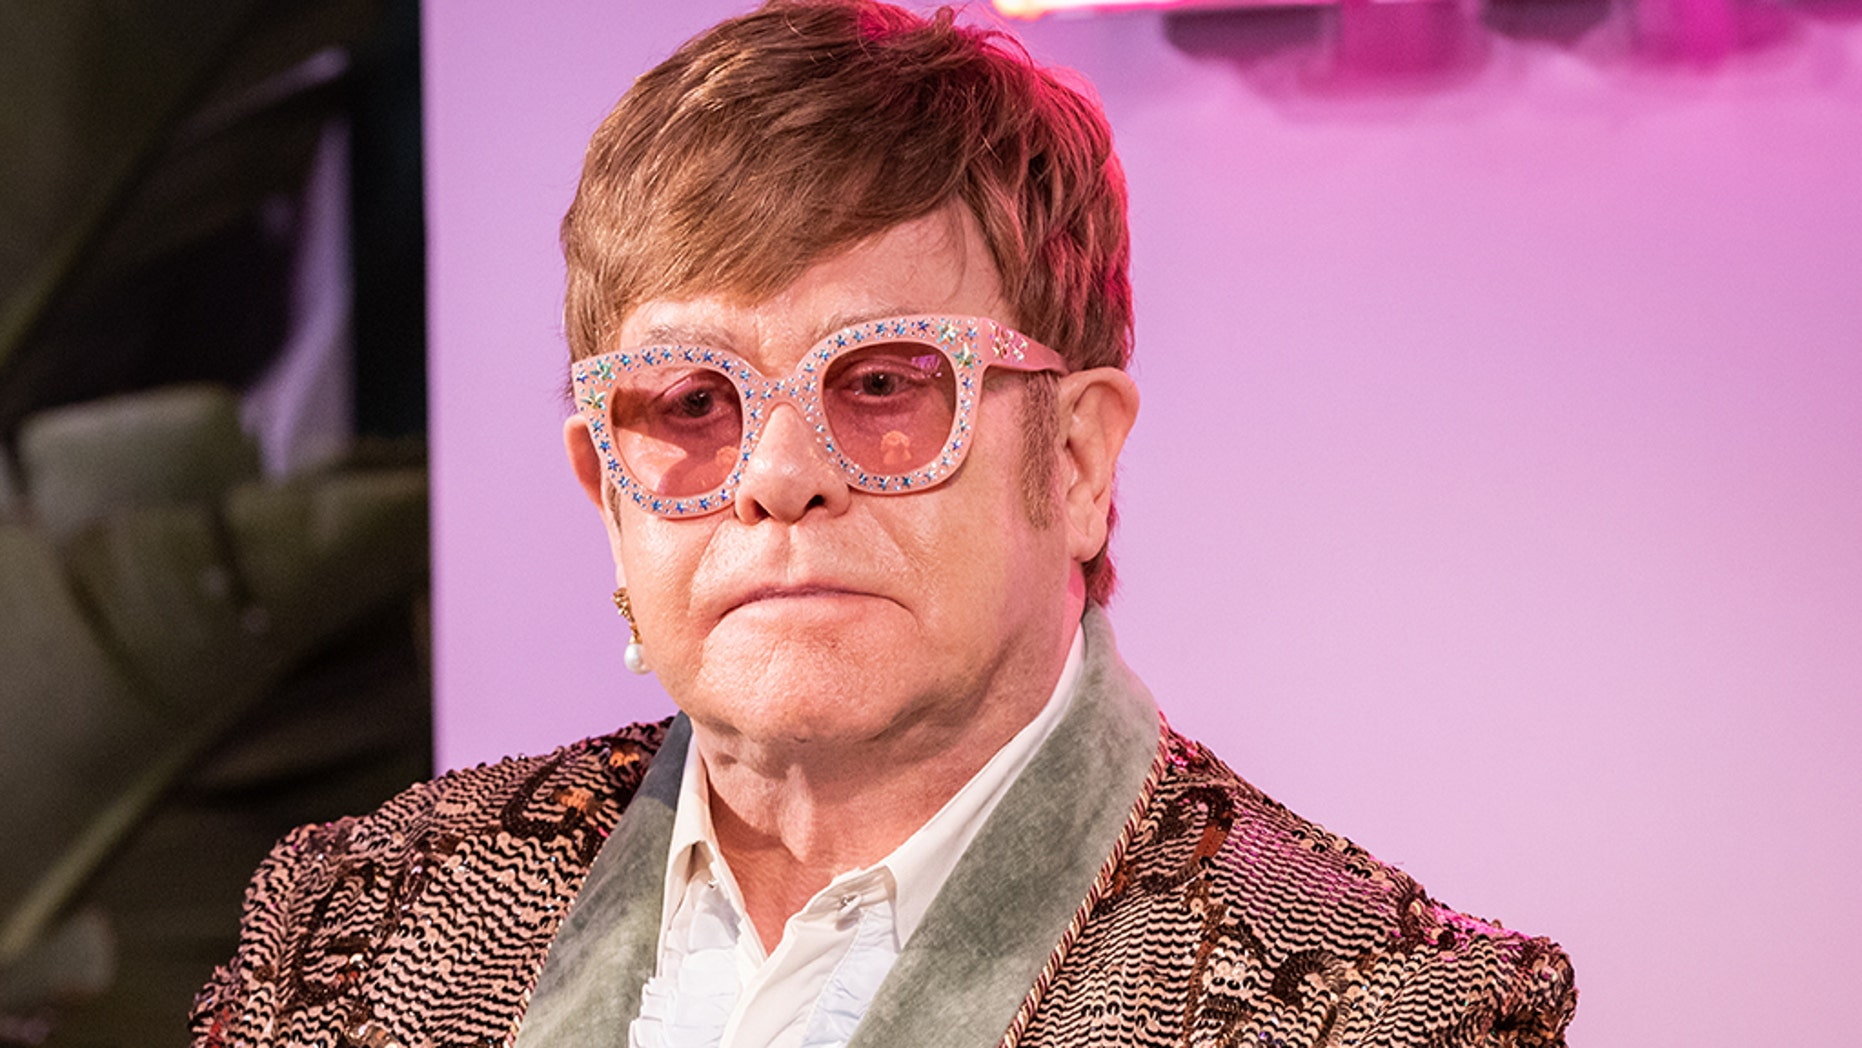 LOS ANGELES, CALIFORNIA - FEBRUARY 24: Elton John attends IMDb LIVE At The Elton John AIDS Foundation Academy Awards® Viewing Party on February 24, 2019 in Los Angeles, California. (Photo by Rich Polk/Getty Images for IMDb)